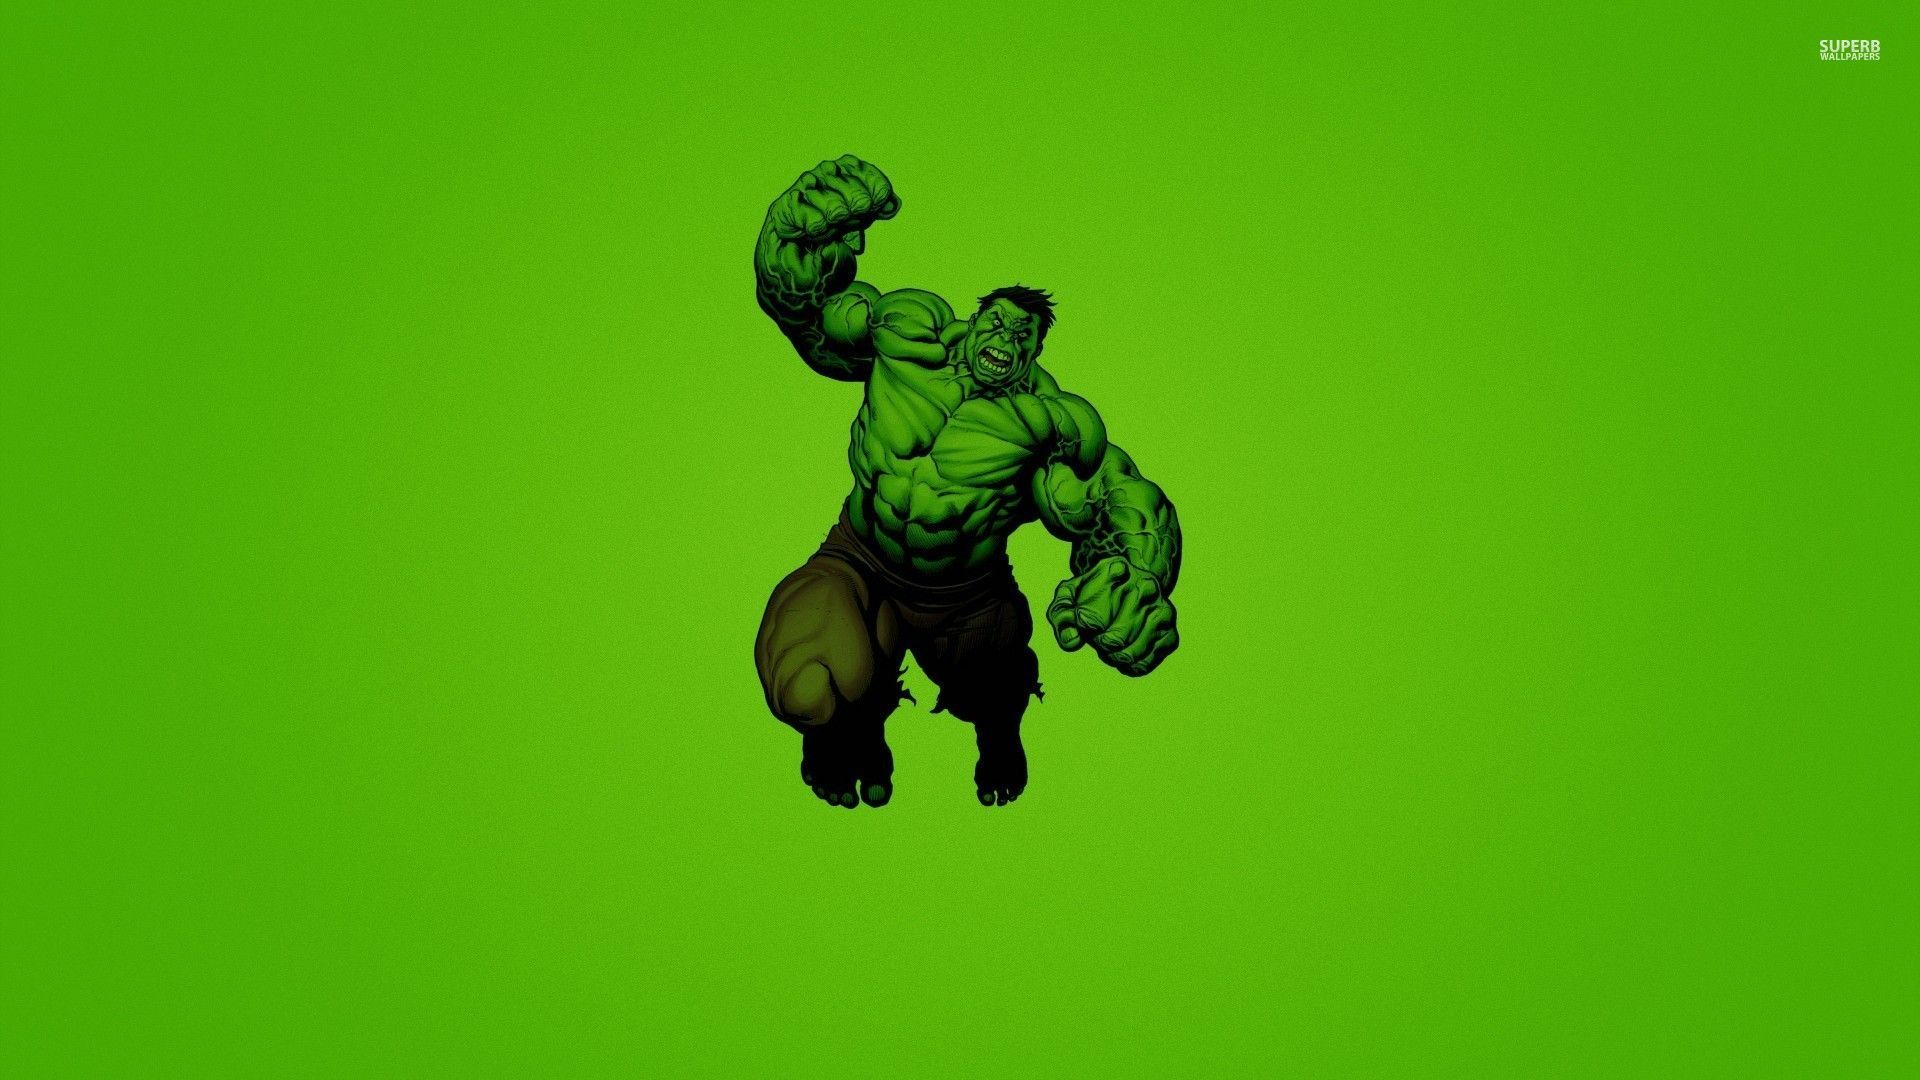 Hulk Cartoon 4k Wallpapers Top Free Hulk Cartoon 4k Backgrounds Wallpaperaccess Superhero Wallpaper Hulk Wallpaper